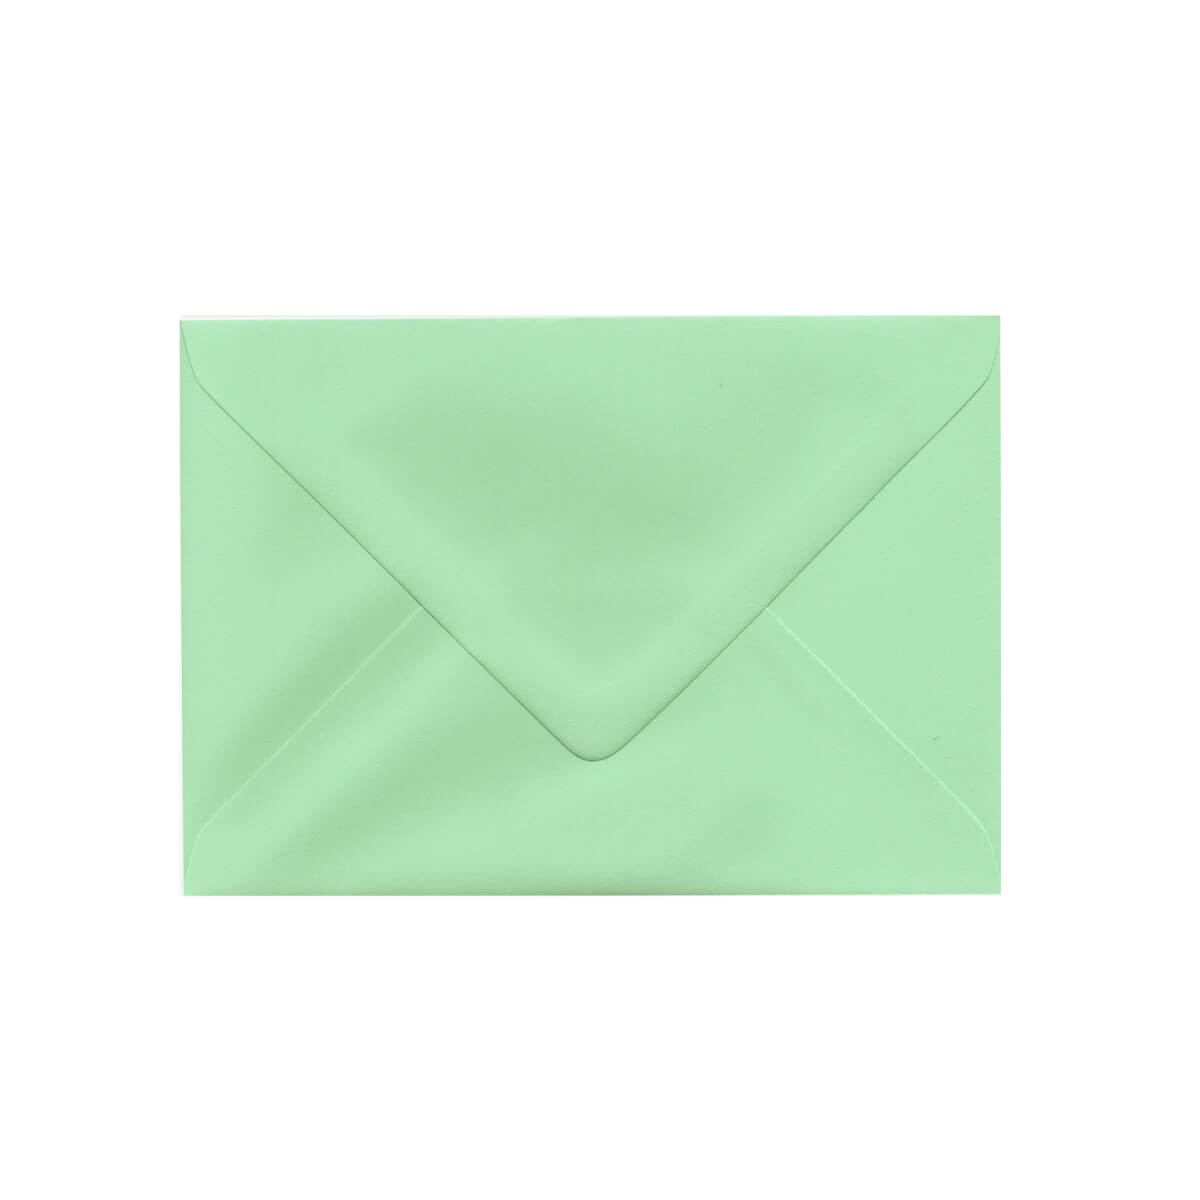 PALE GREEN 133 x 184 mm ENVELOPES (i8)